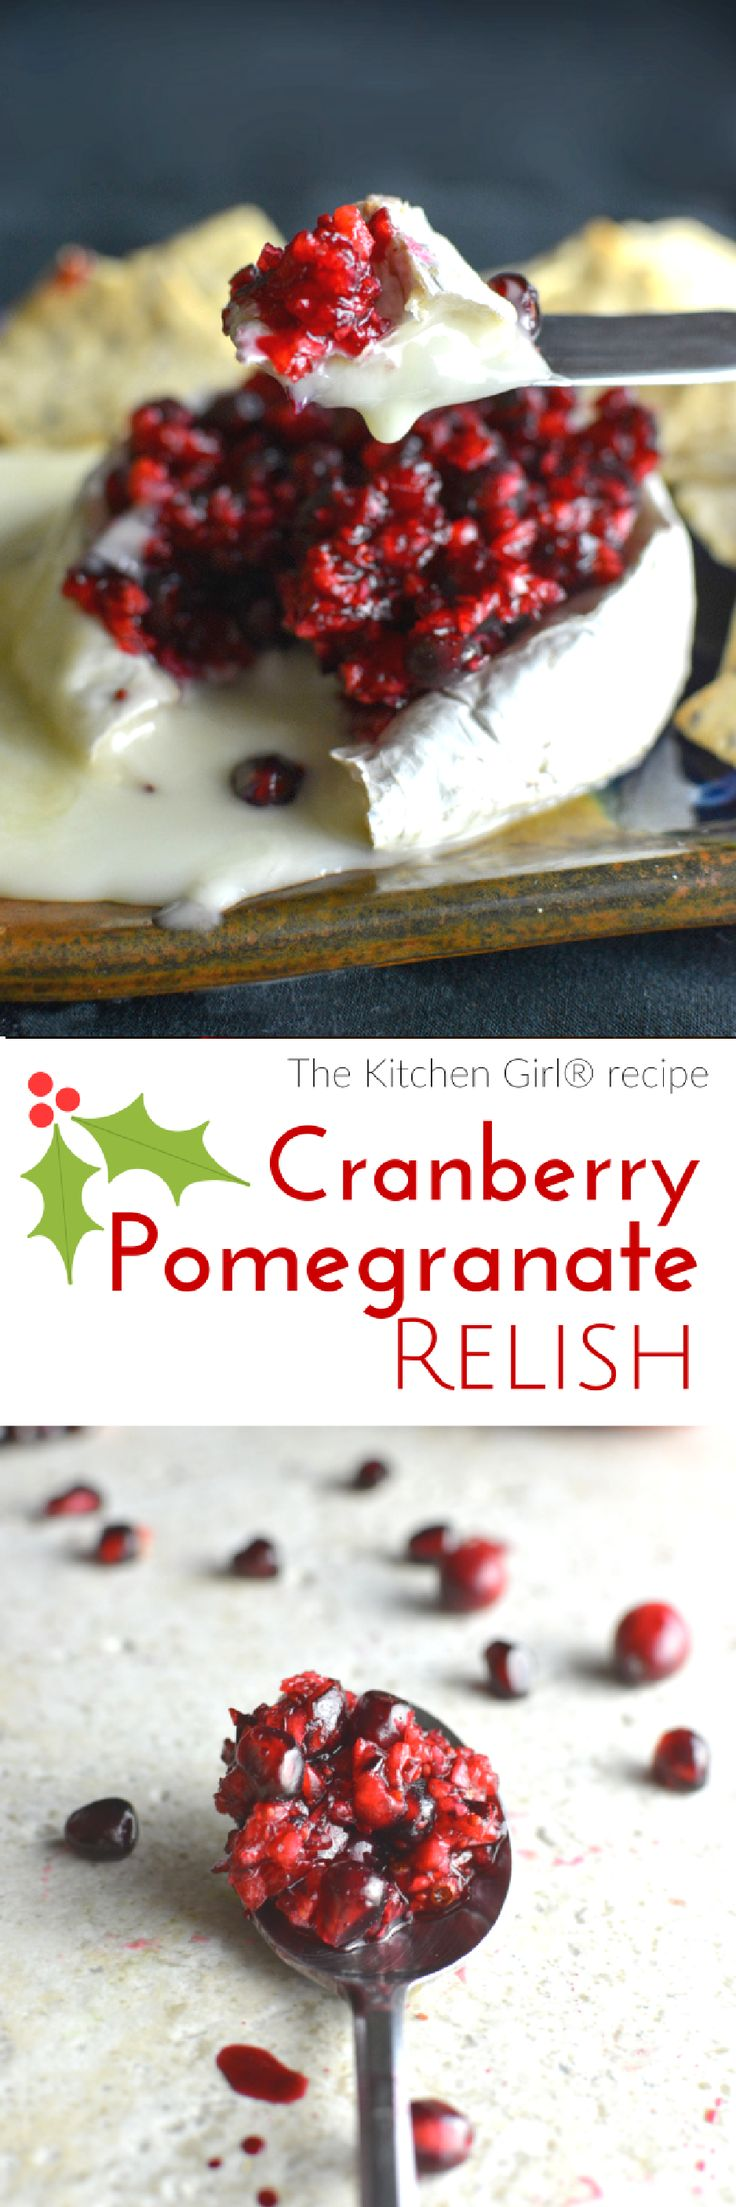 Spread the holiday magic over warm brie, turkey sandos, or ice cream. No Cook Cranberry Pomegranate Relish from thekitchengirl.com (raw, GF, and vegan)